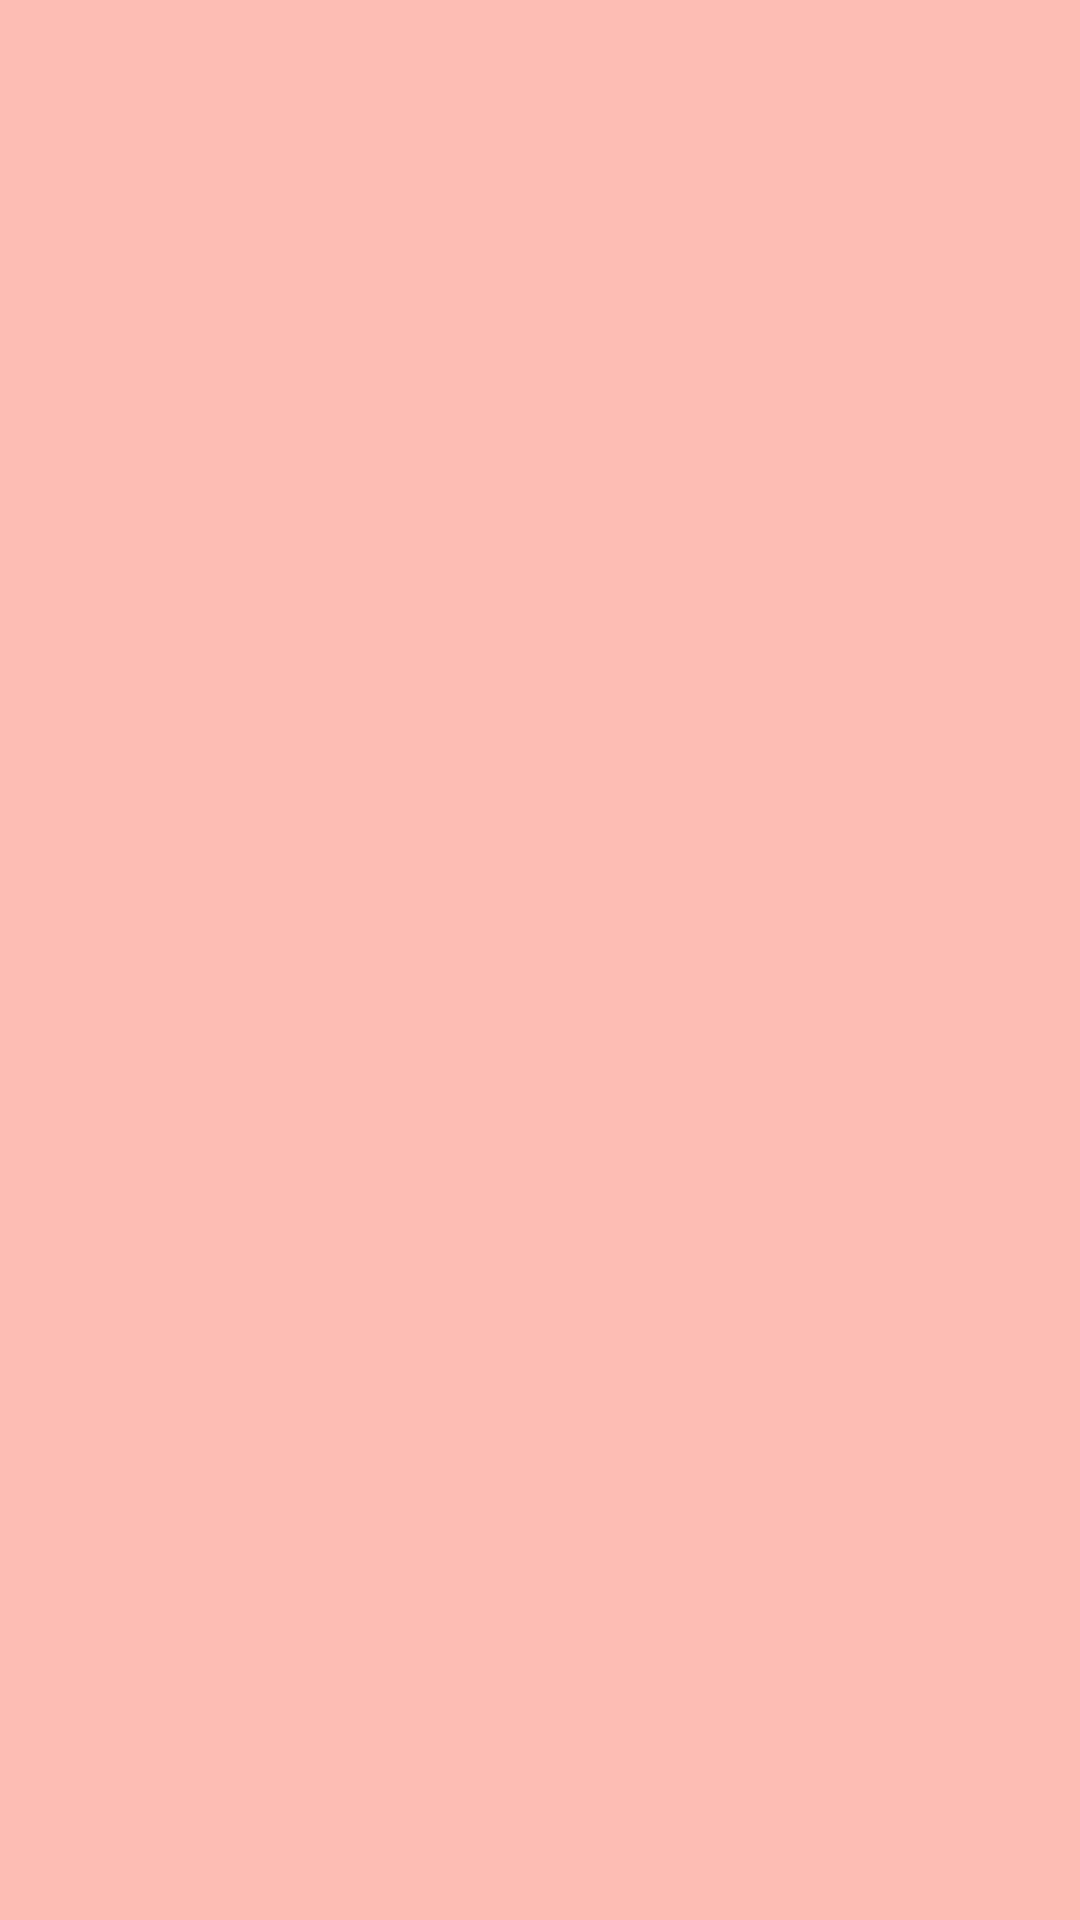 1080x1920 Melon Solid Color Background